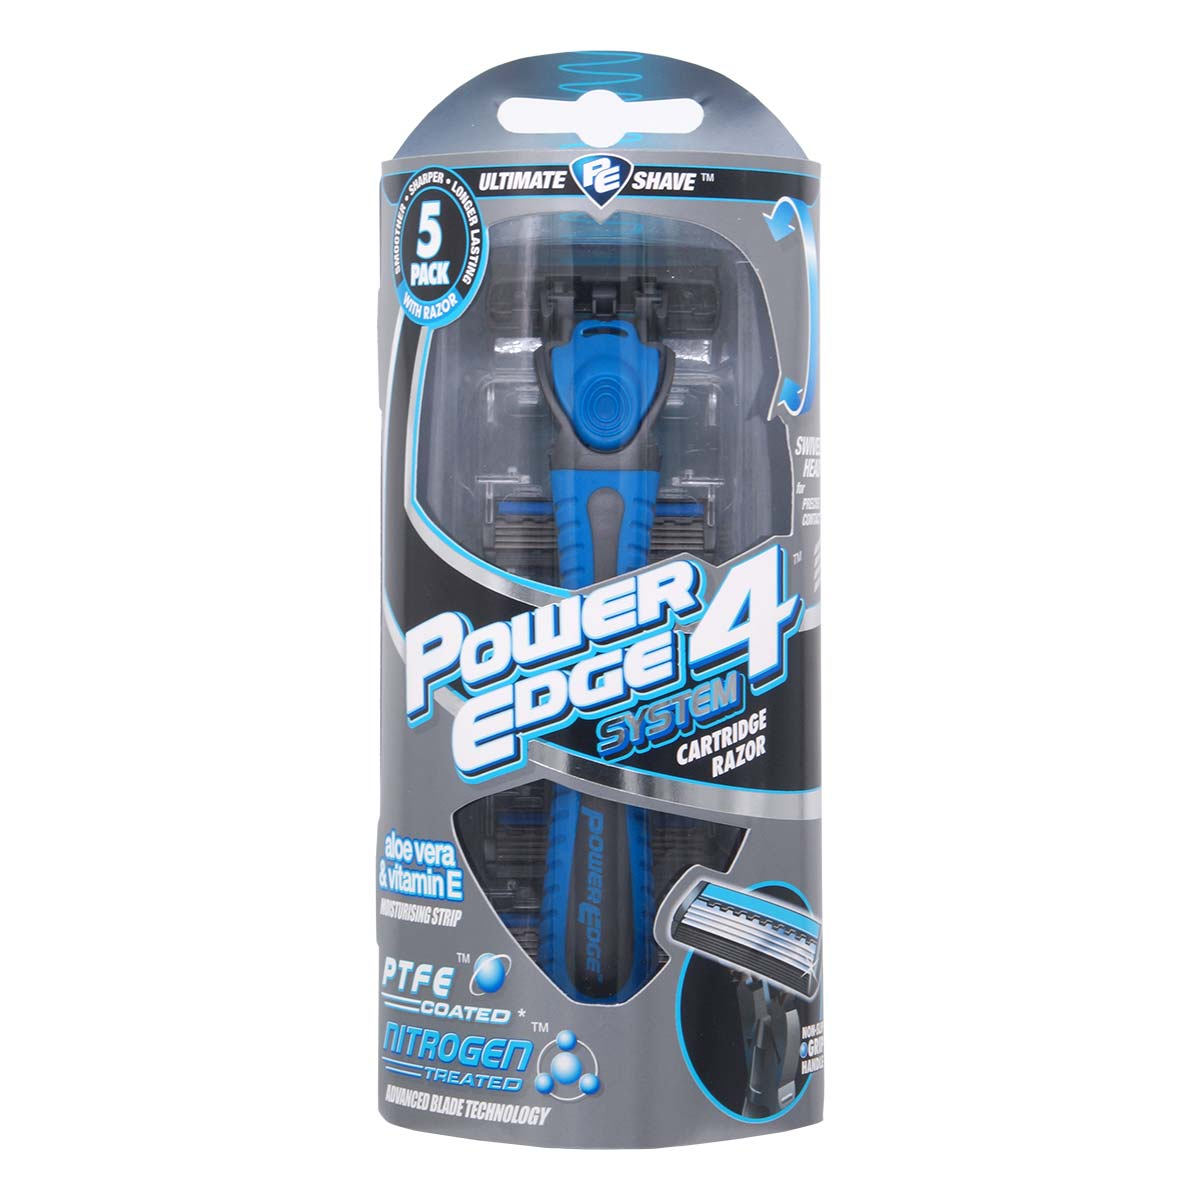 Power Edge System 4 Starter Pack (1* Razor + 5 * Blades)